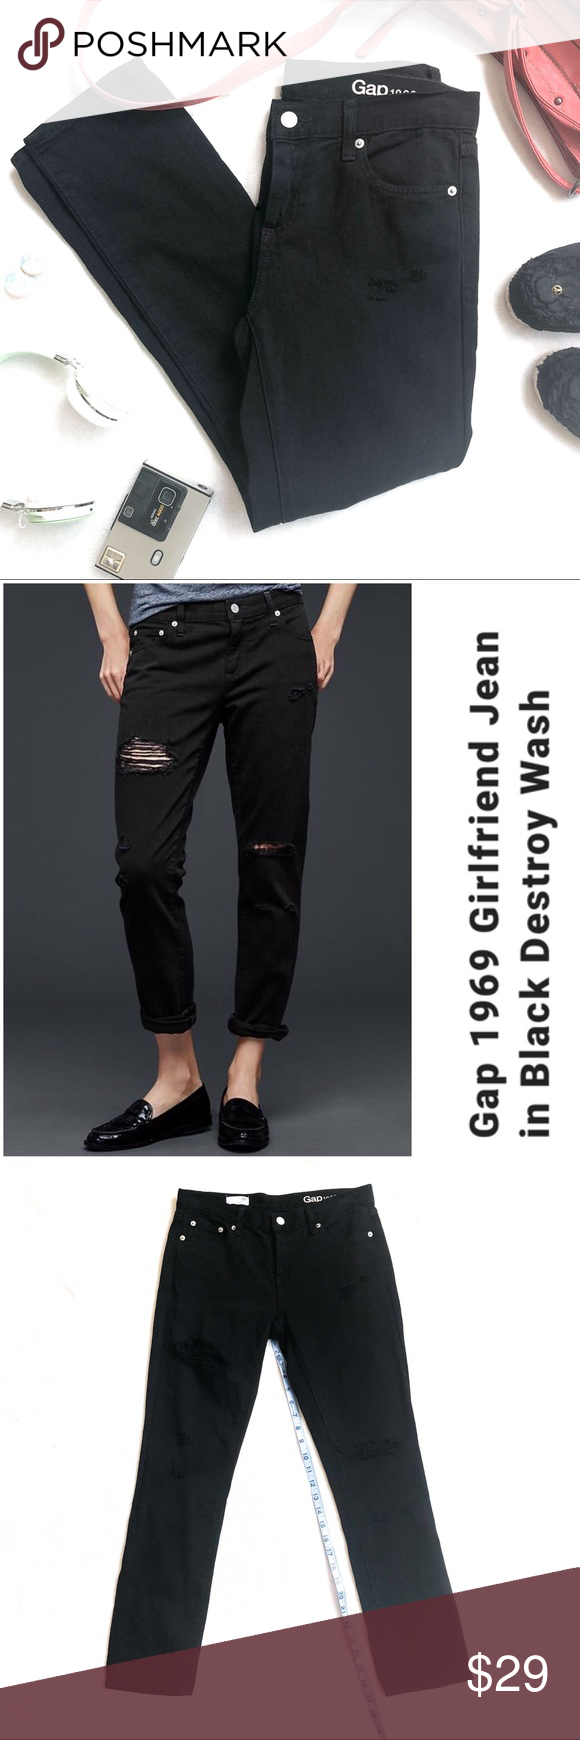 62109b56f64 NWOT GAP 1969 Black Destroy Wash Girlfriend Jeans NWOT GAP 1969 Black  Destroy Wash Girlfriend Jeans